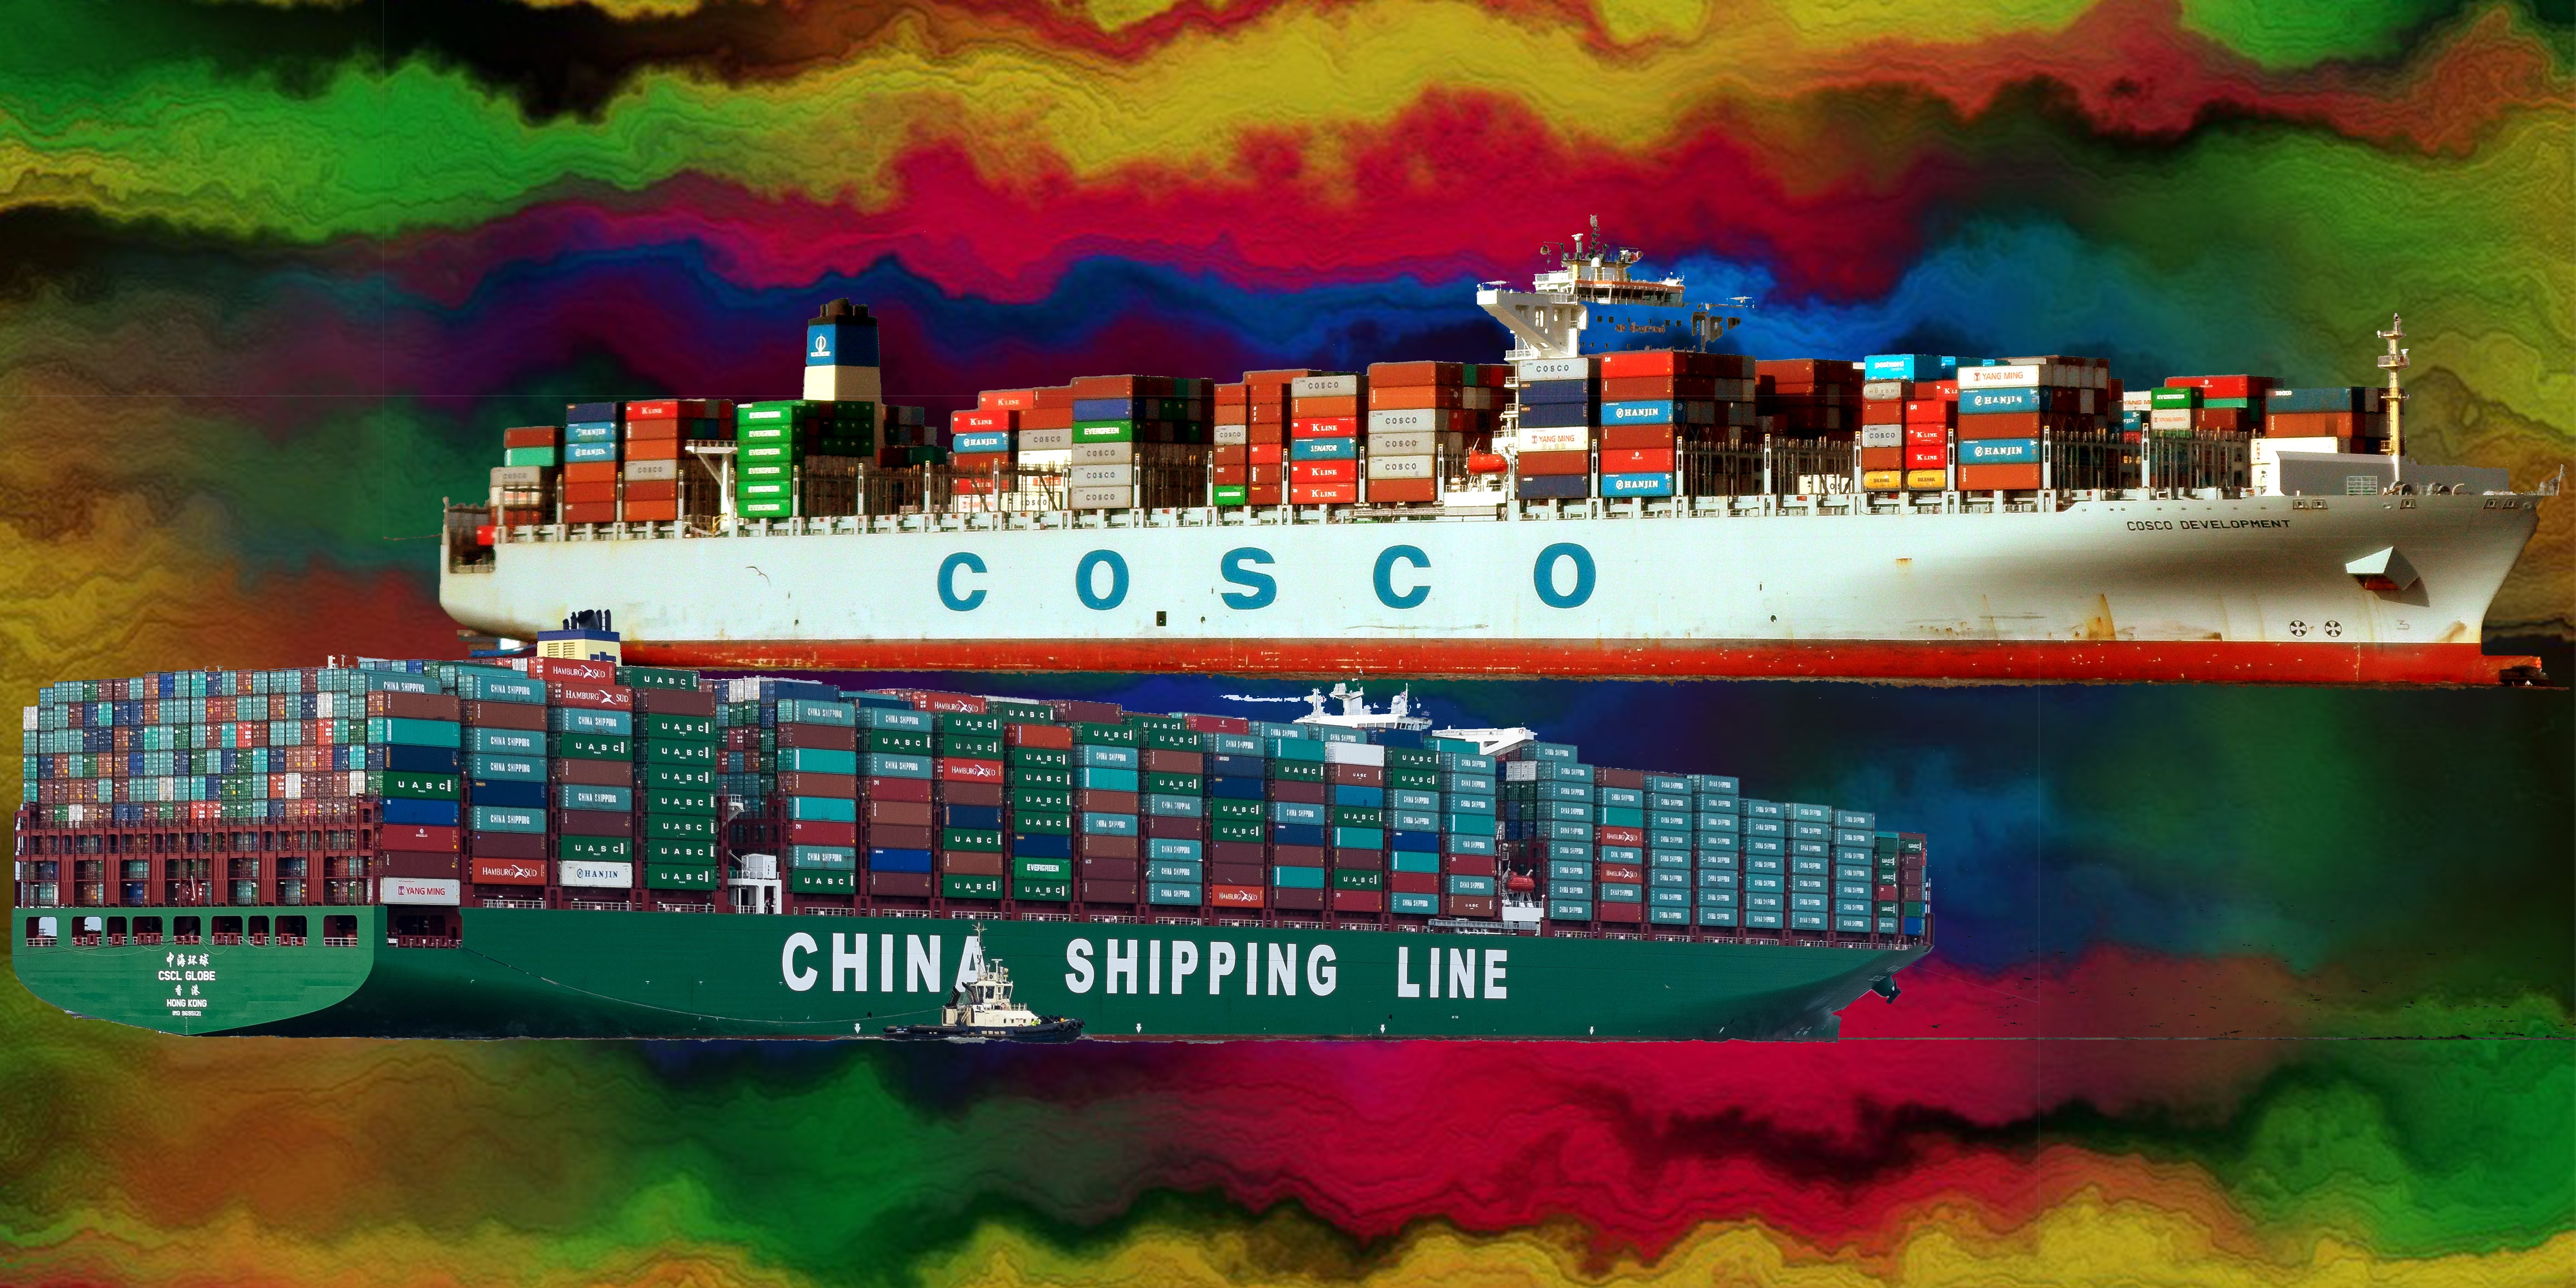 Here Comes China Cosco Shipping Corporation, Shipping